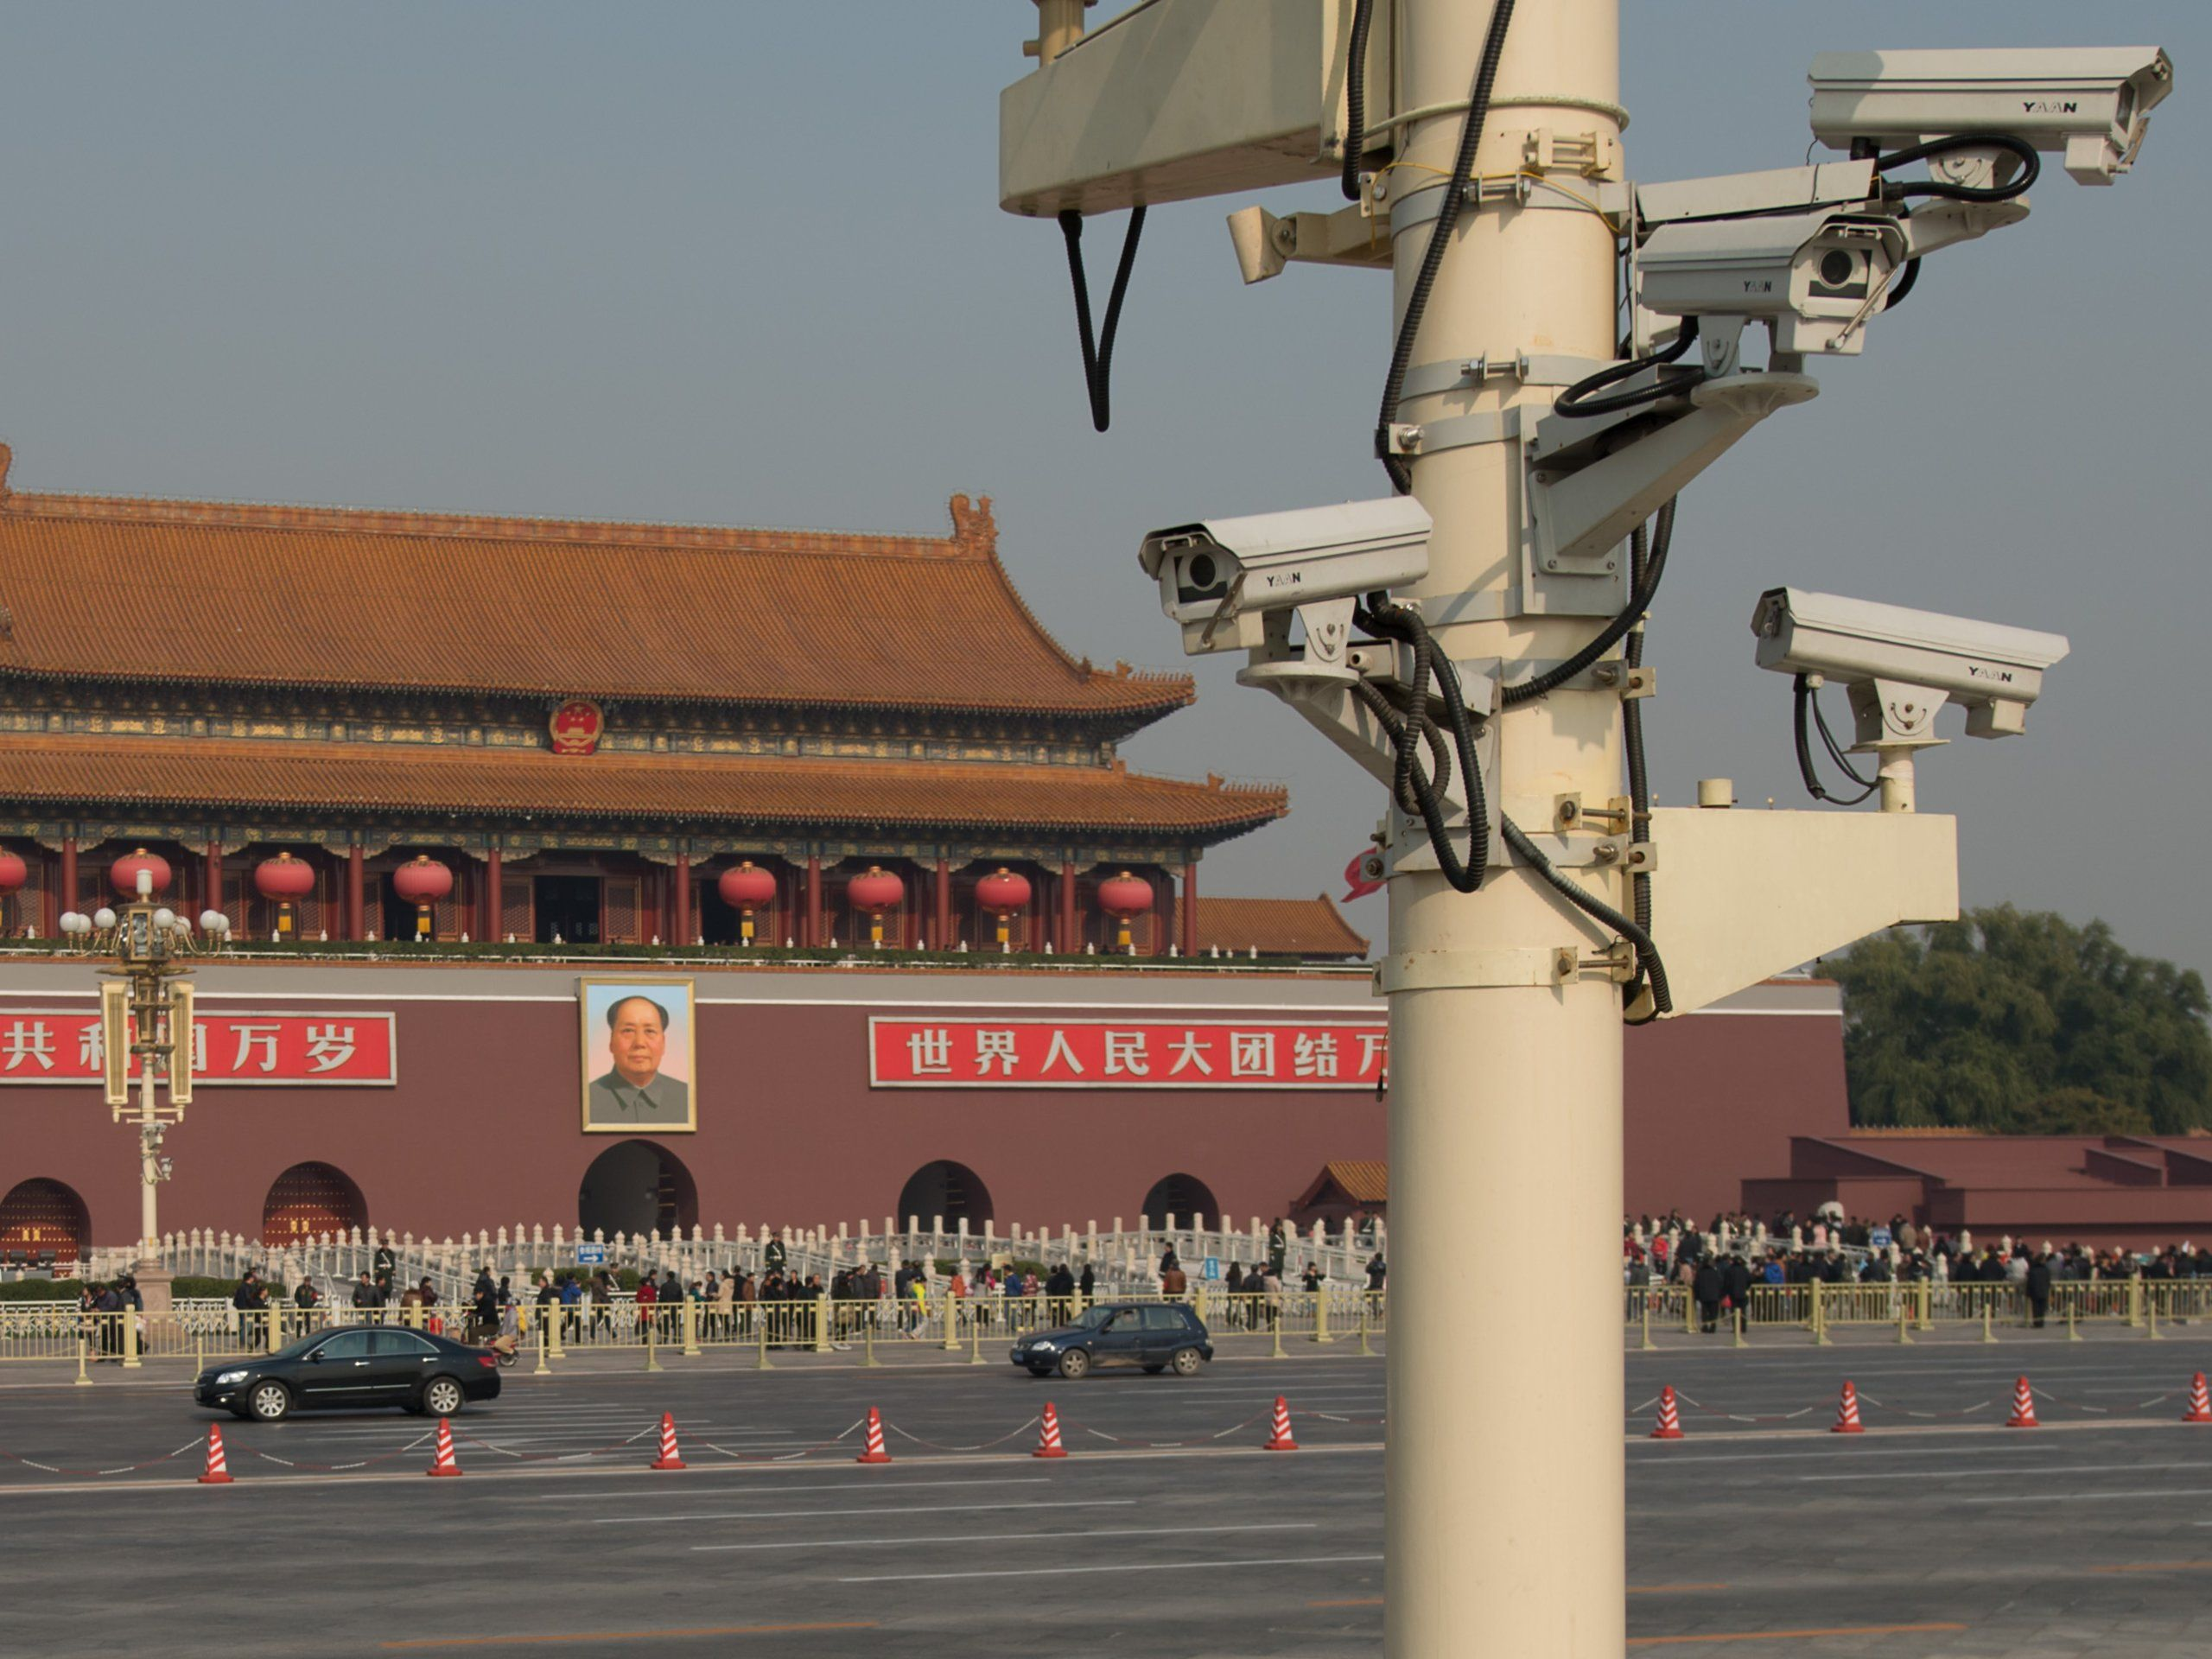 These Are The Things That Can Get You Punished Under China S Creepy Social Credit System From Fake News To Jaywalking Security Cameras For Home Cctv Camera Facial Recognition System